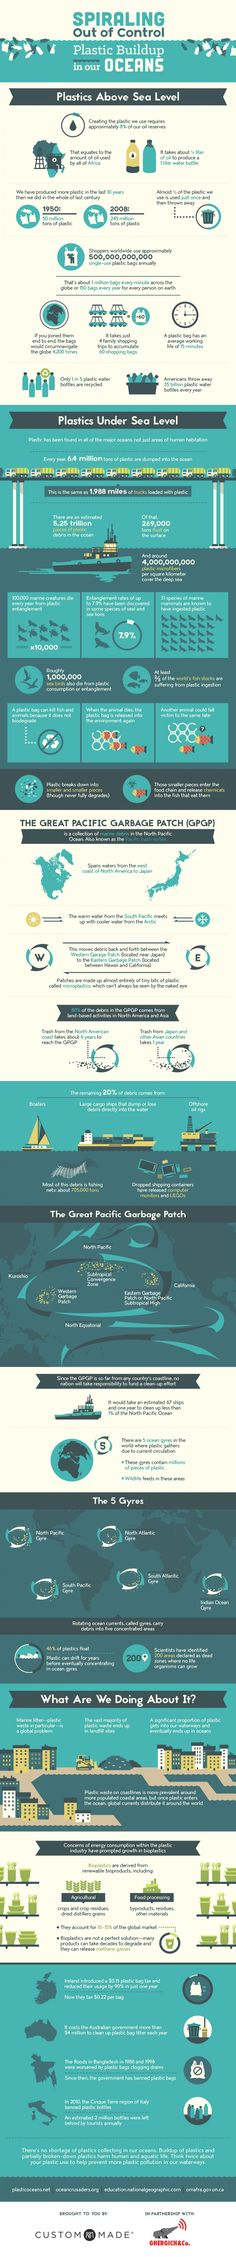 Plastic; Spiraling Out of Control Infographic